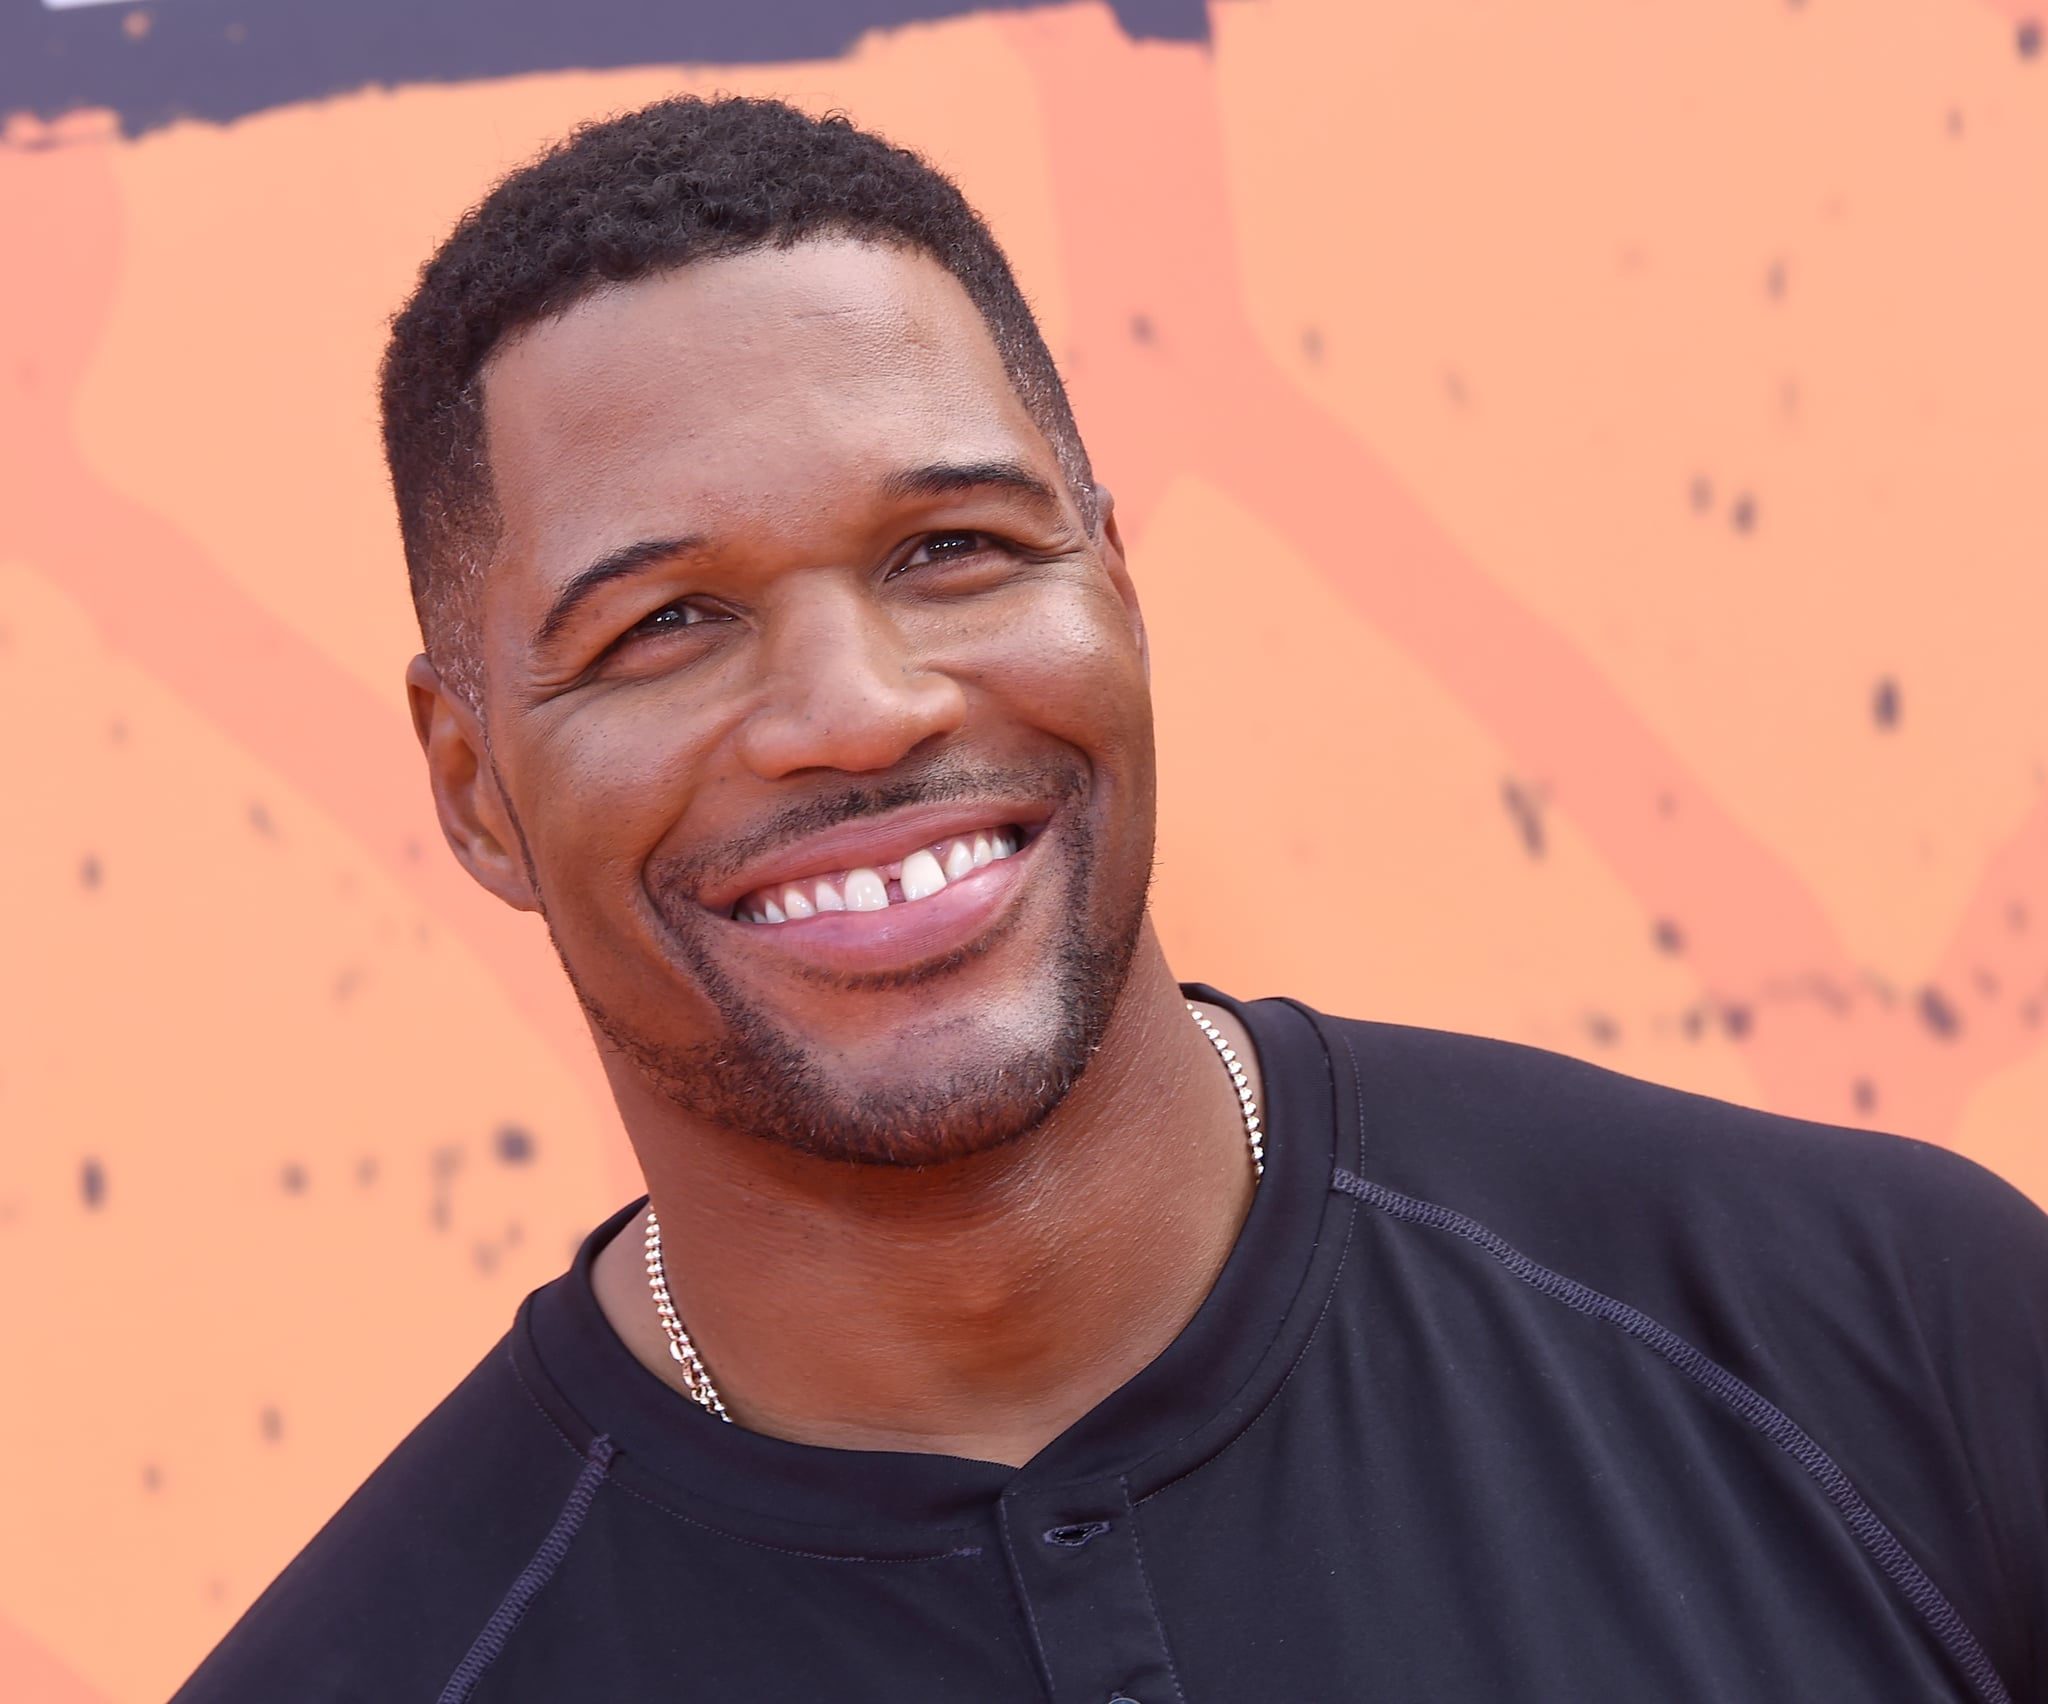 WESTWOOD, CA - JULY 14:  Michael Strahan arrives at Nickelodeon Kids' Choice Sports Awards 2016 at UCLA's Pauley Pavilion on July 14, 2016 in Westwood, California.  (Photo by Gregg DeGuire/WireImage)